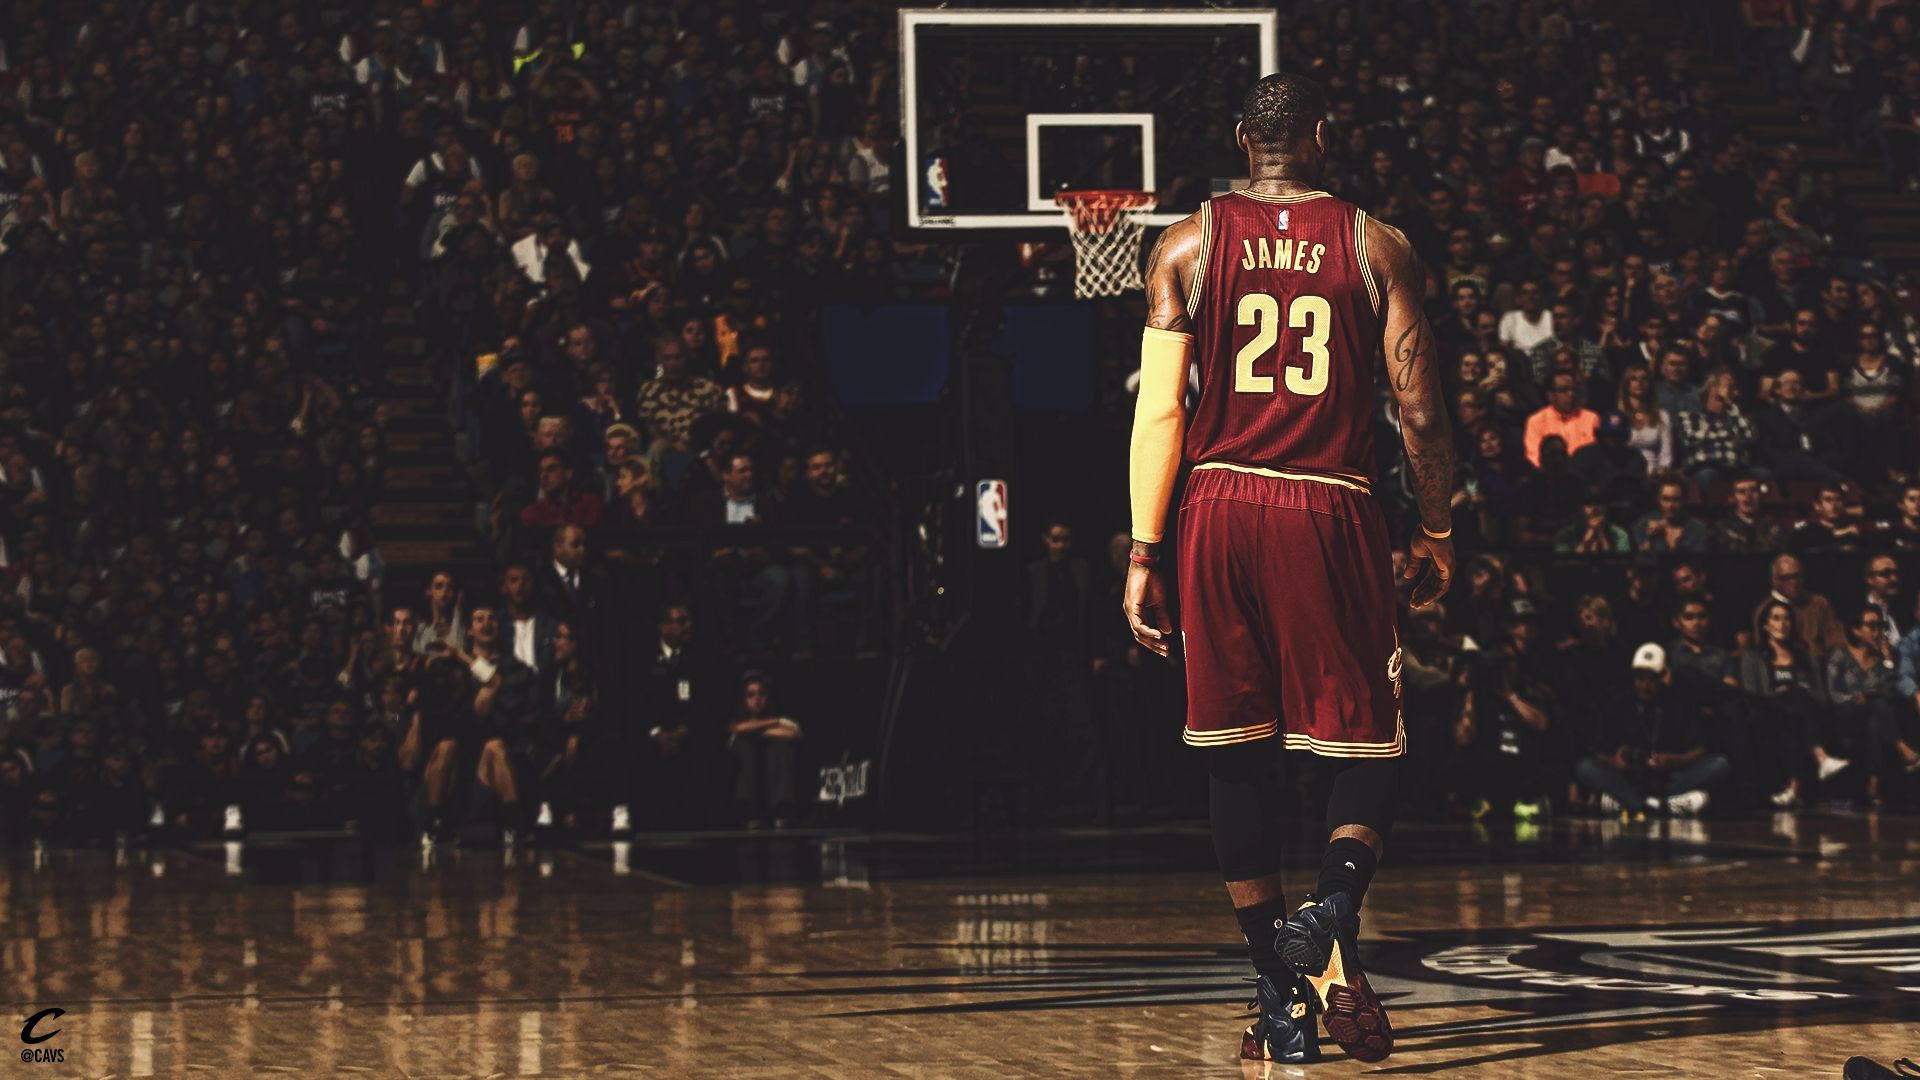 10 Most Popular Lebron James Desktop Wallpapers Full Hd 1080p For Pc Desktop In 2020 Lebron James Wallpapers Lebron James Basketball Wallpaper